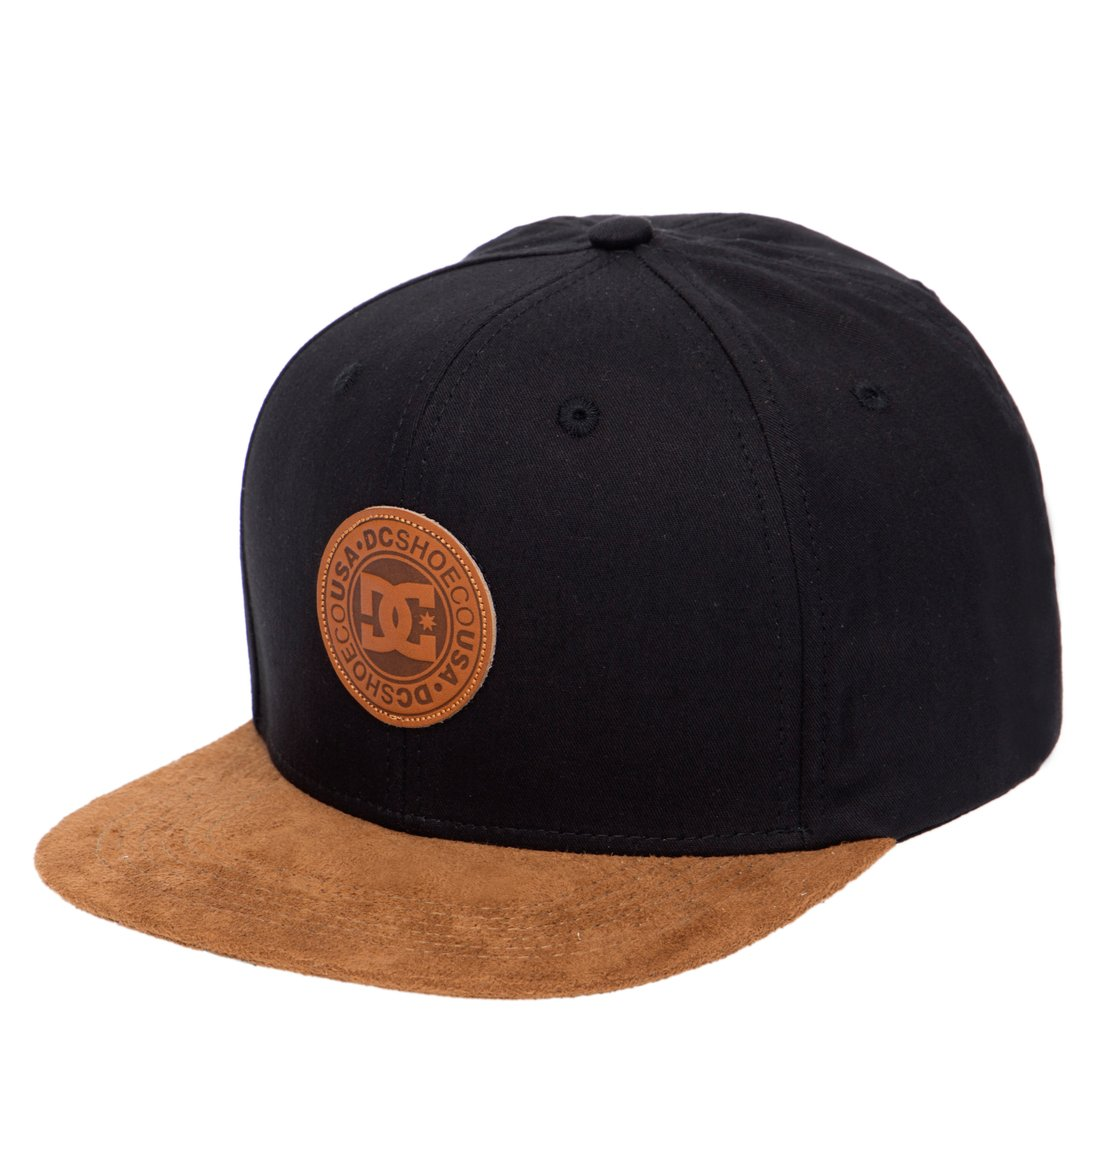 0 DC BONE SNAPPY TOP Preto BR78802954 DC Shoes 3c900115963